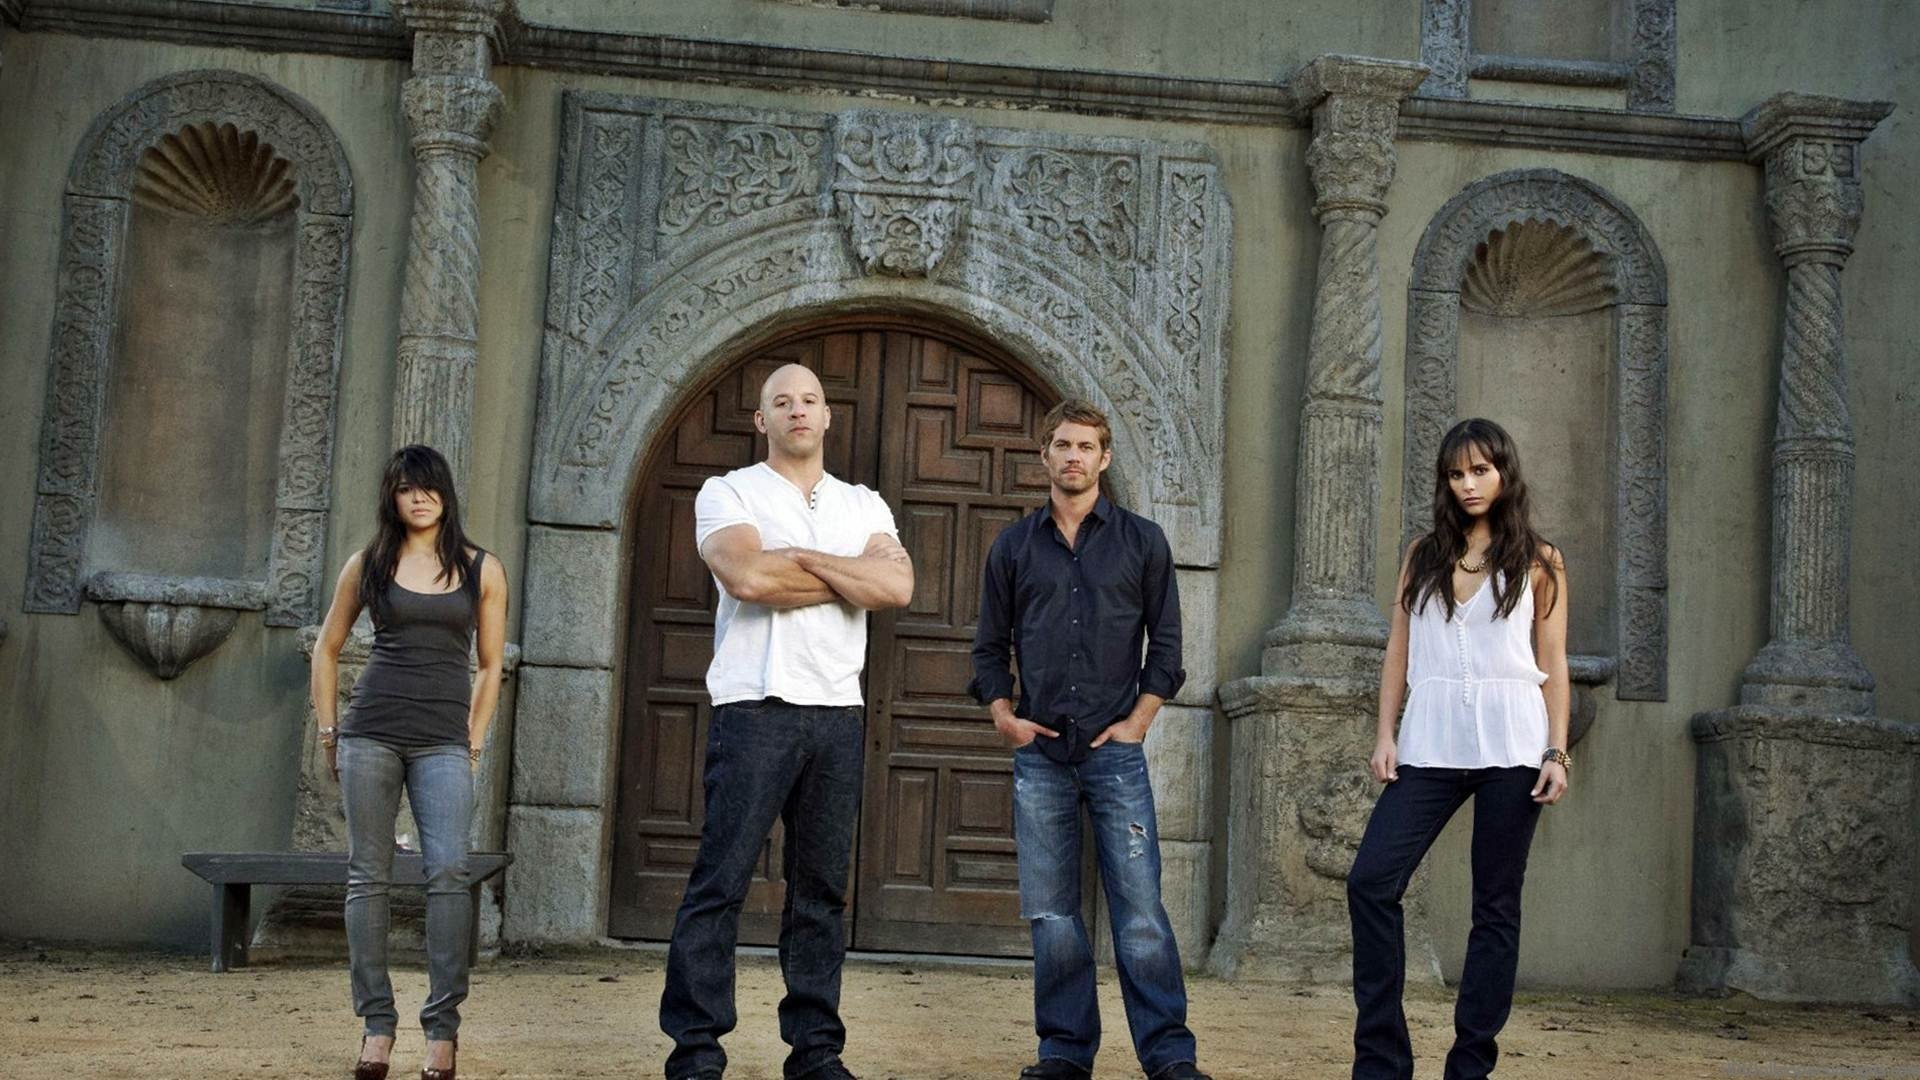 fast and furious 7 full movie free download 480p